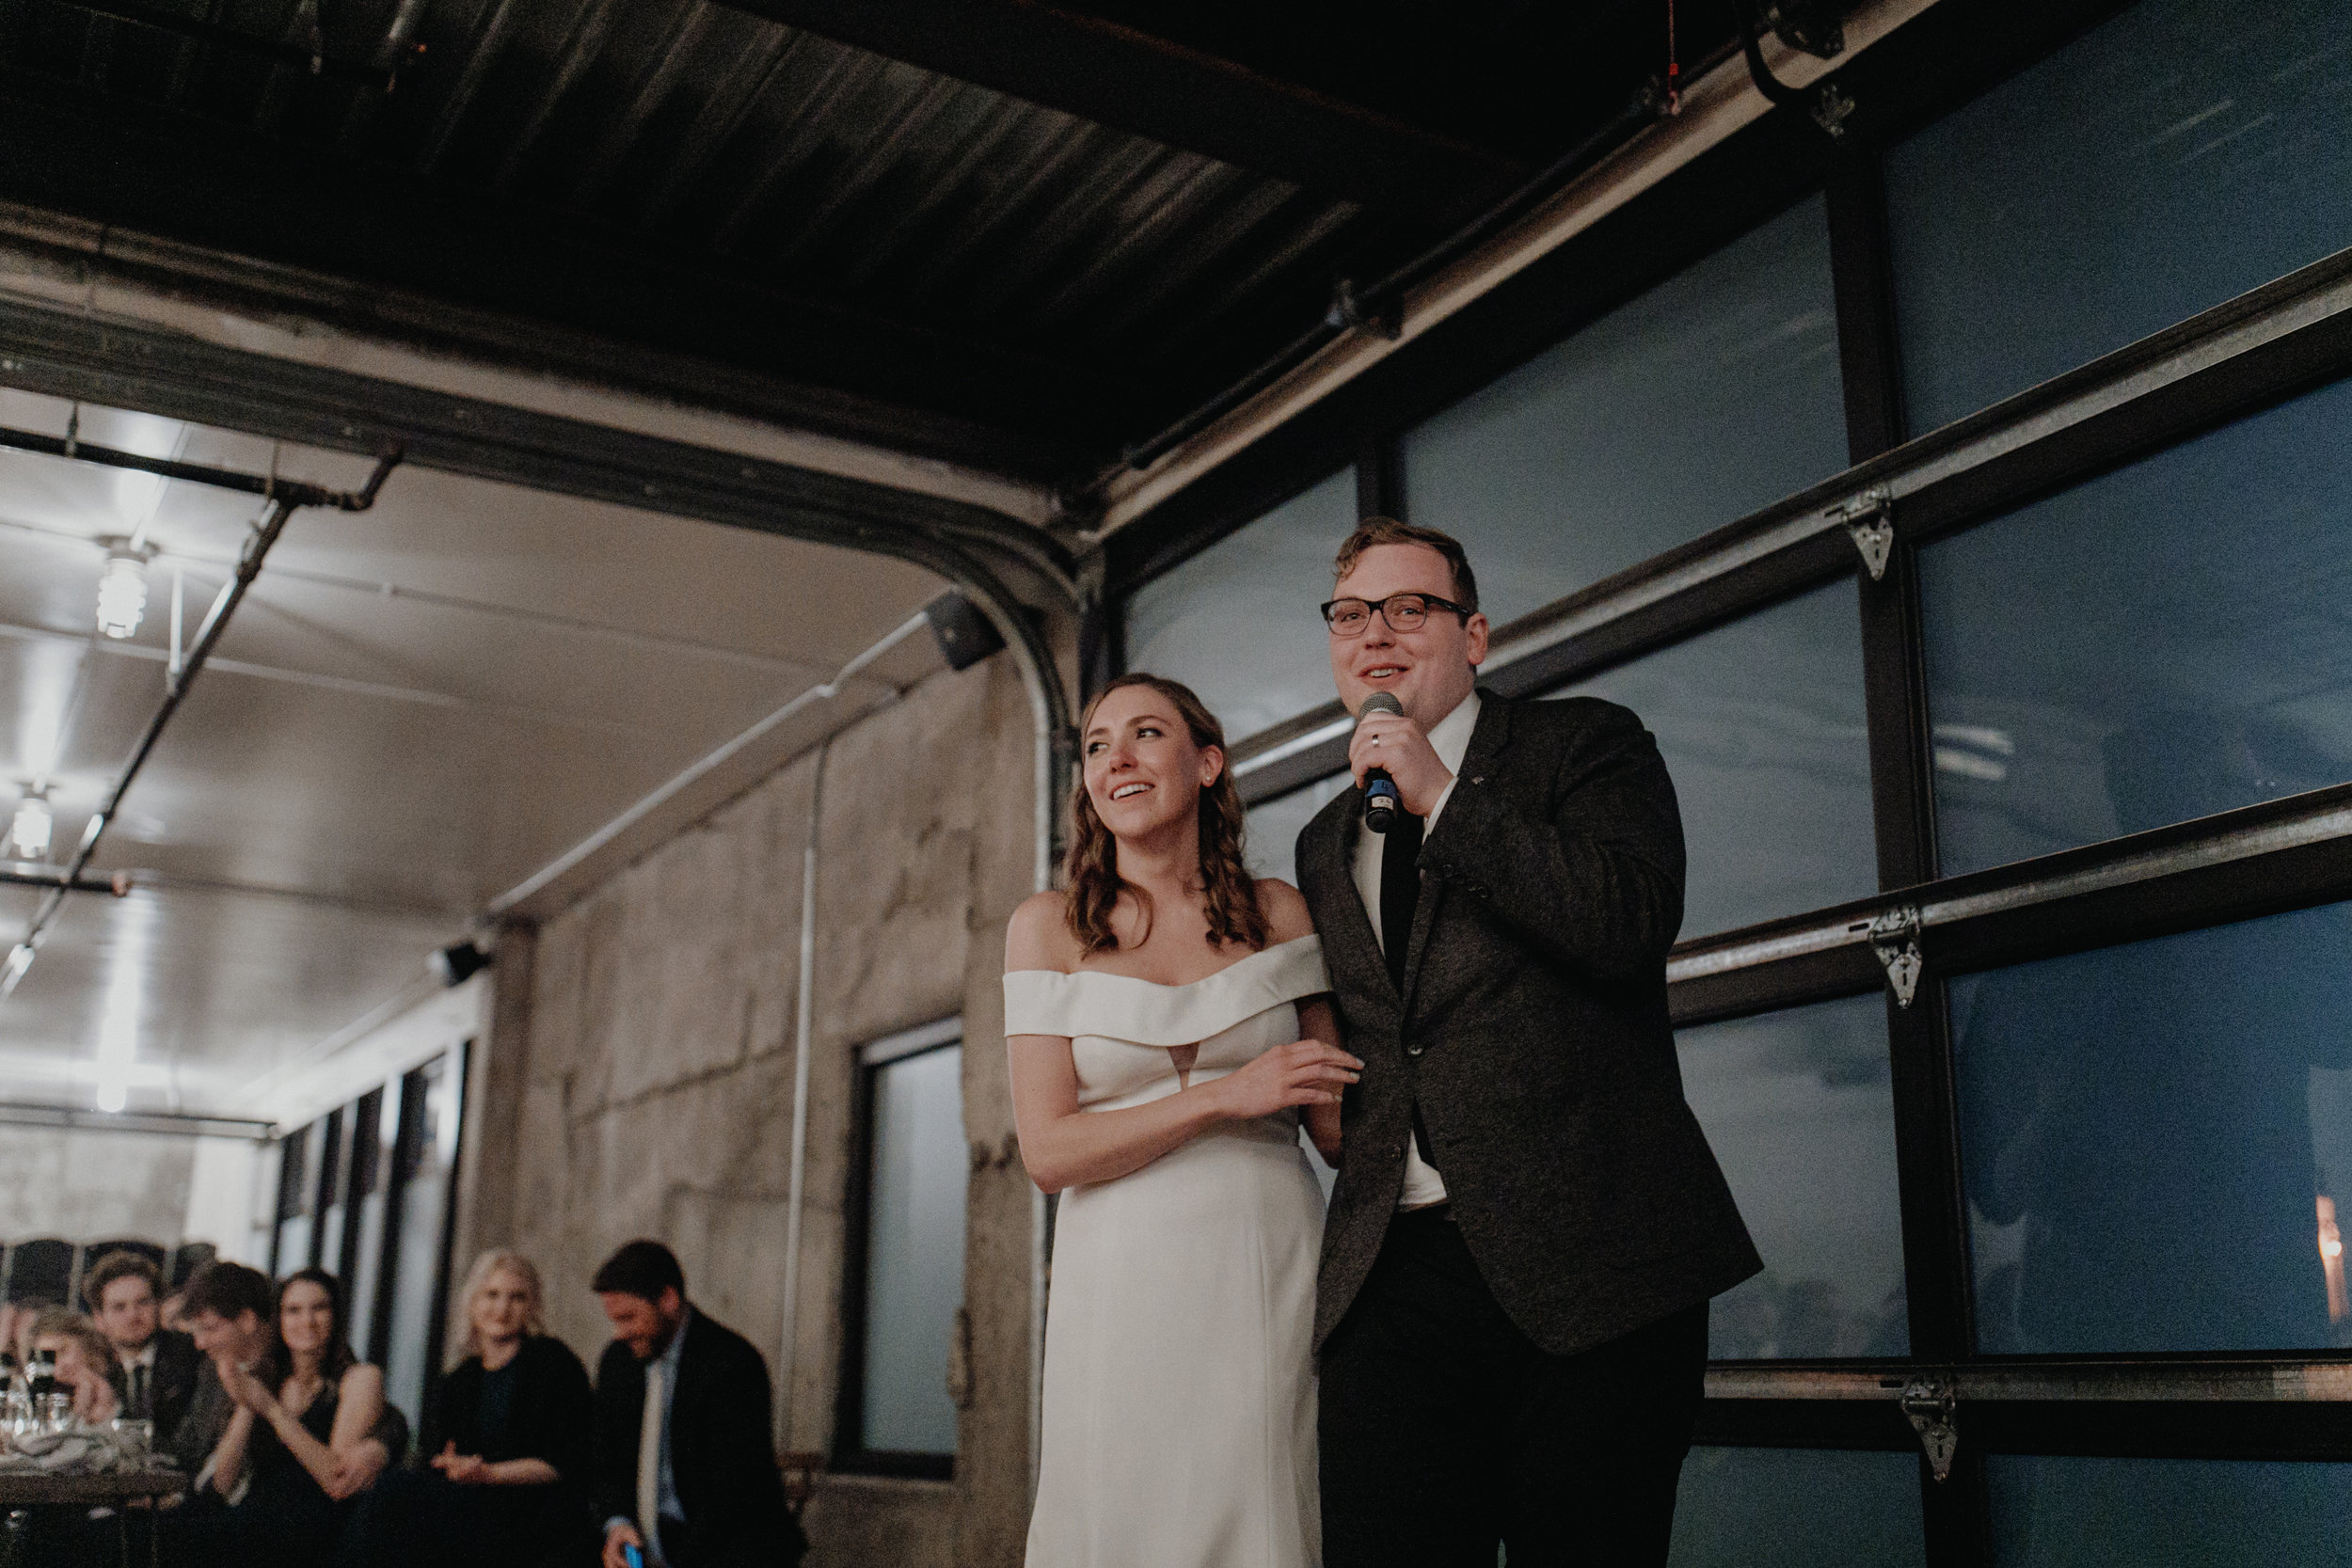 fremont_foundry_seattle_wedding_oliviastrohm___-11.jpg